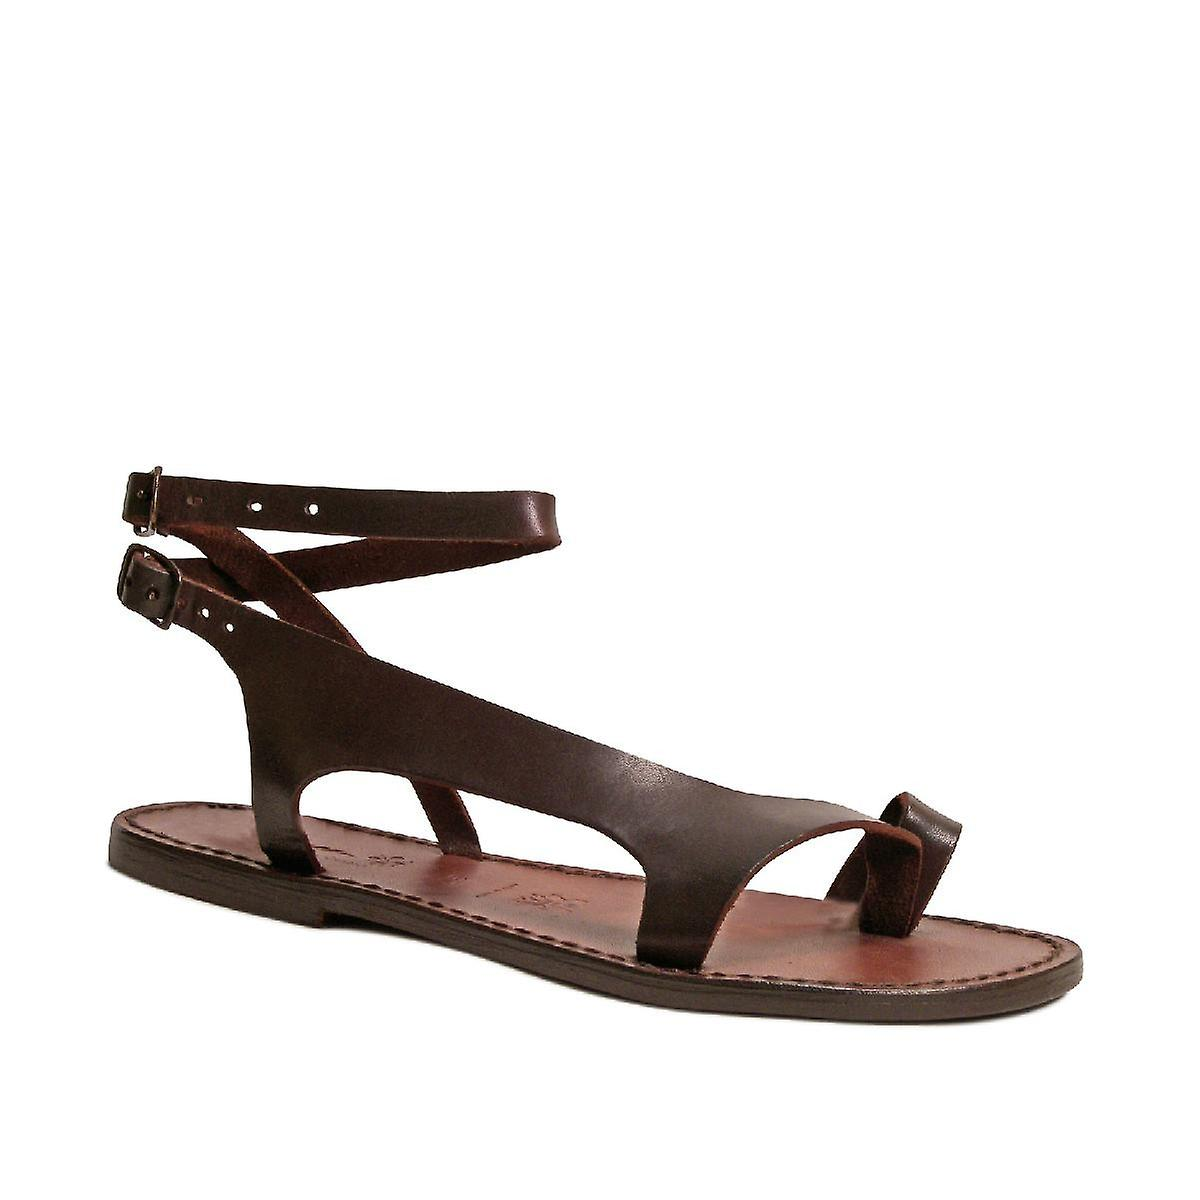 d0a2fdc1719 Brown leather thong sandals for women Handmade in Italy